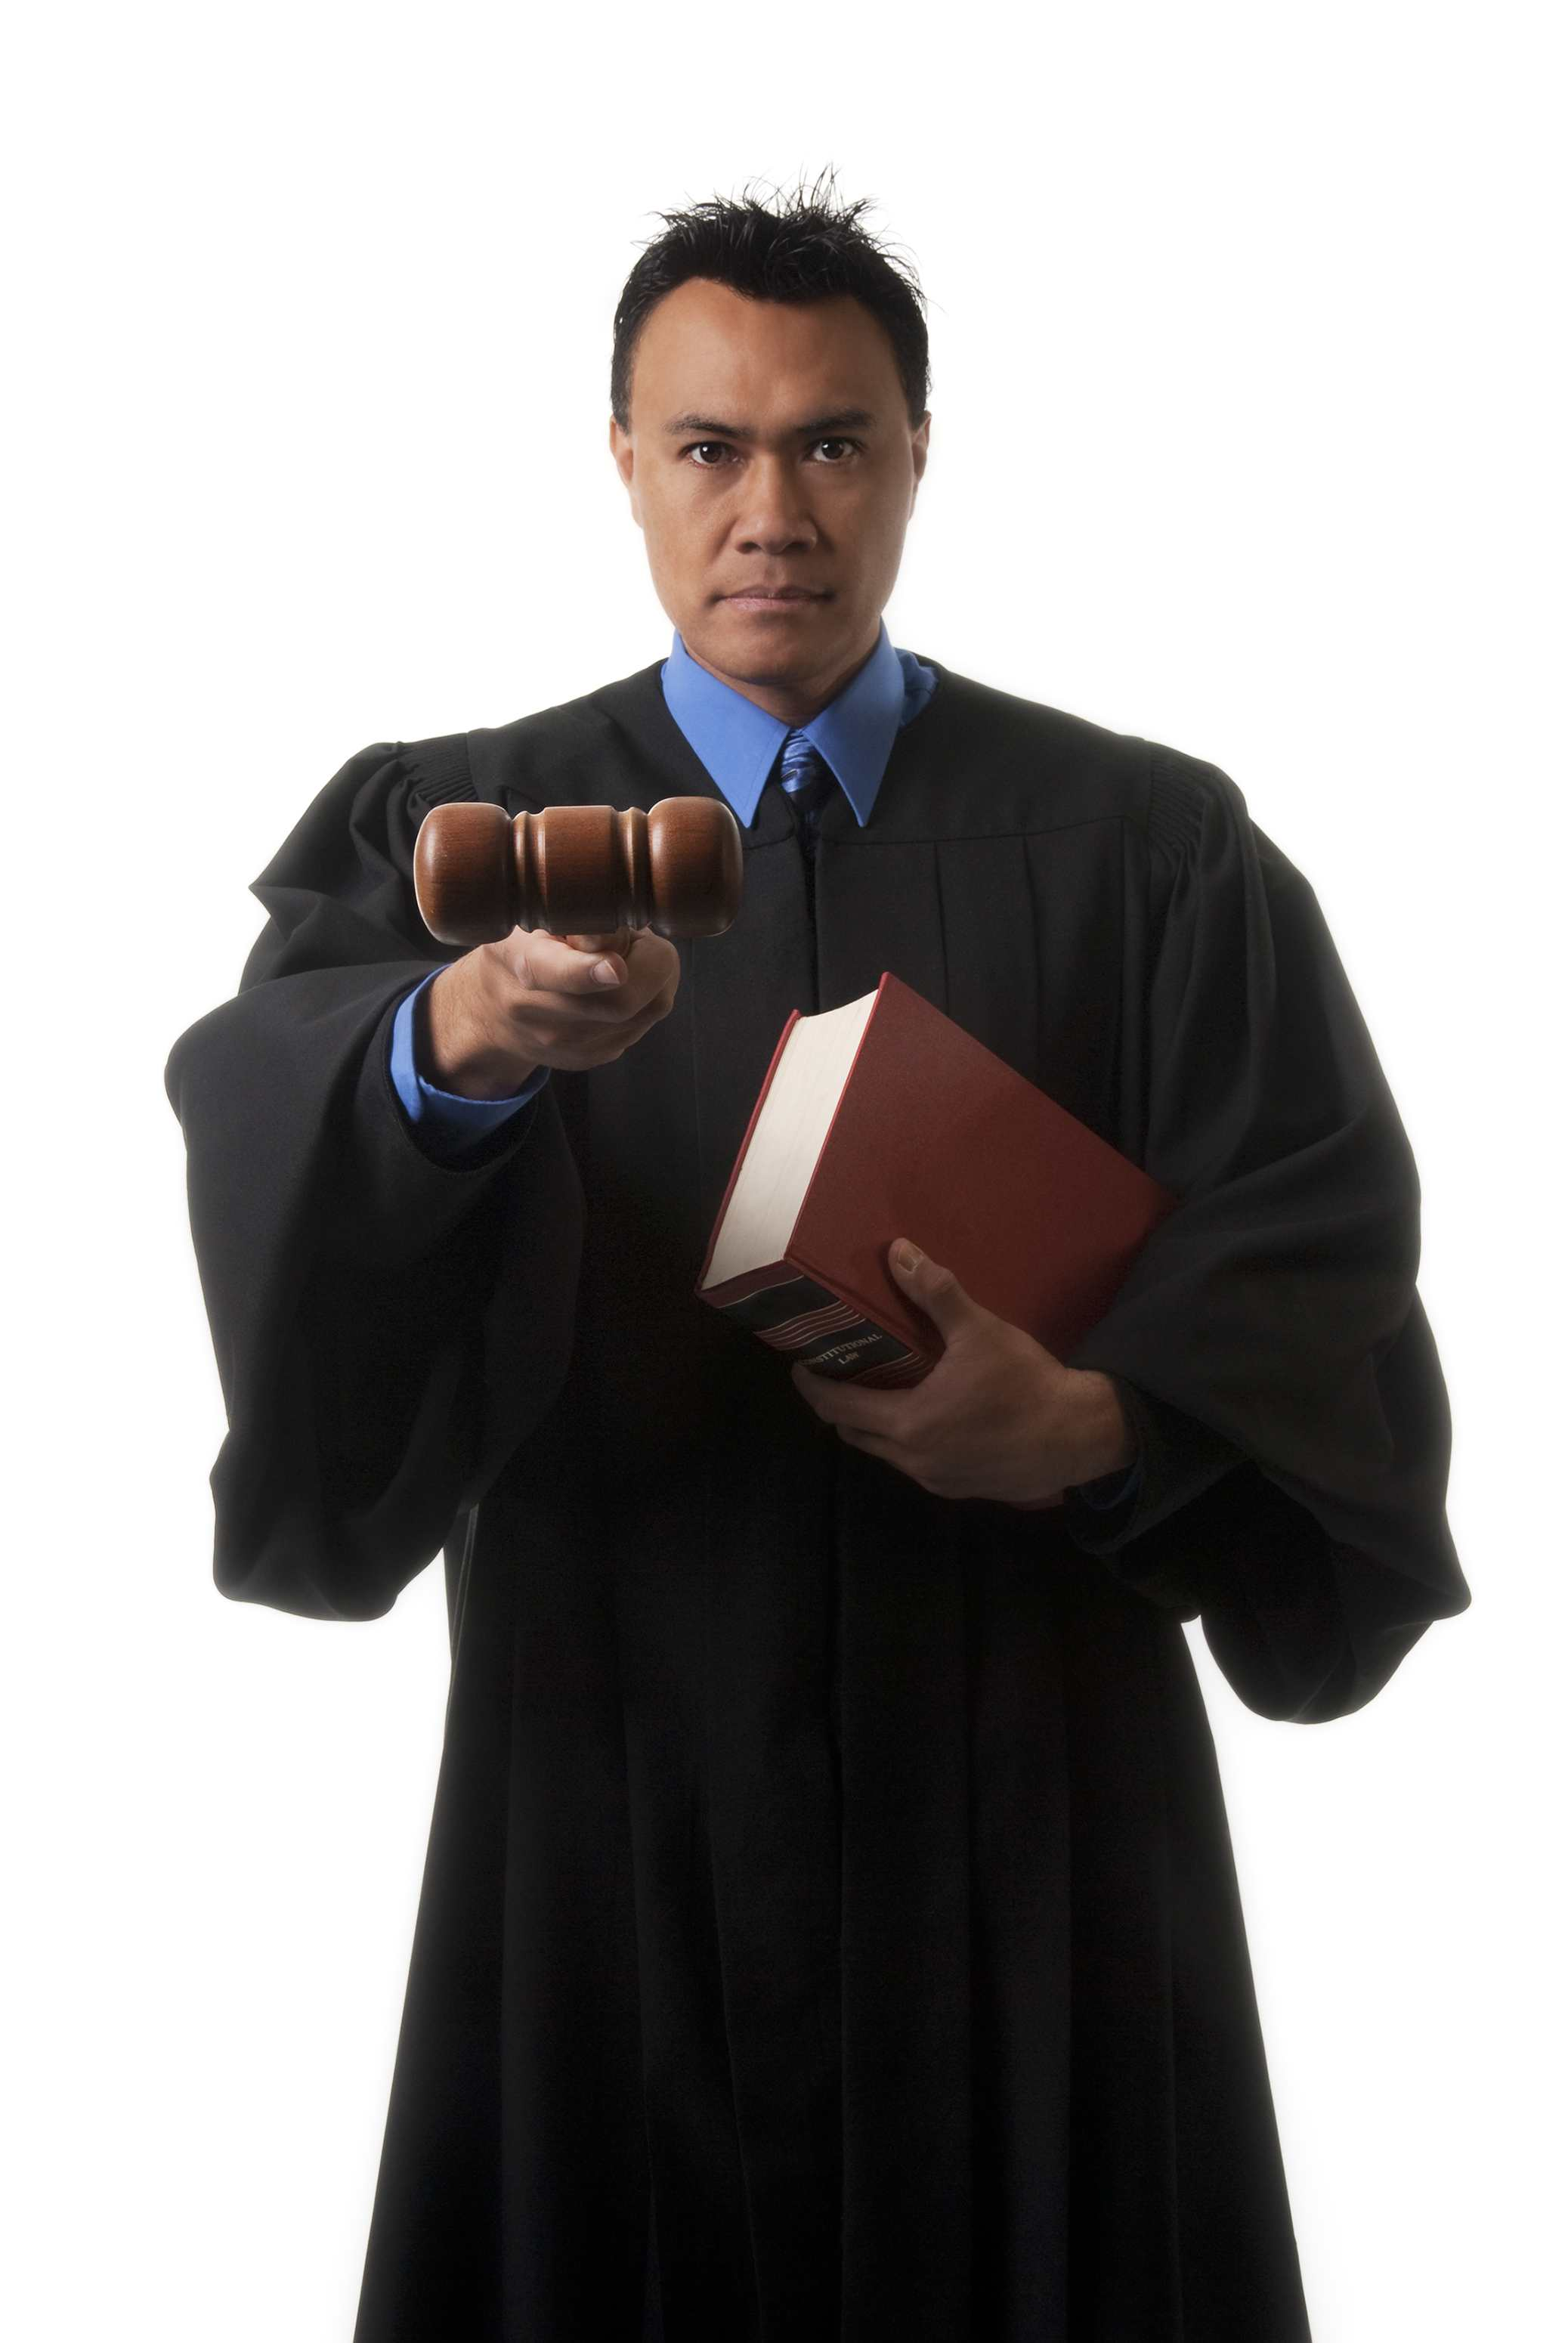 Judge with gavel and book.